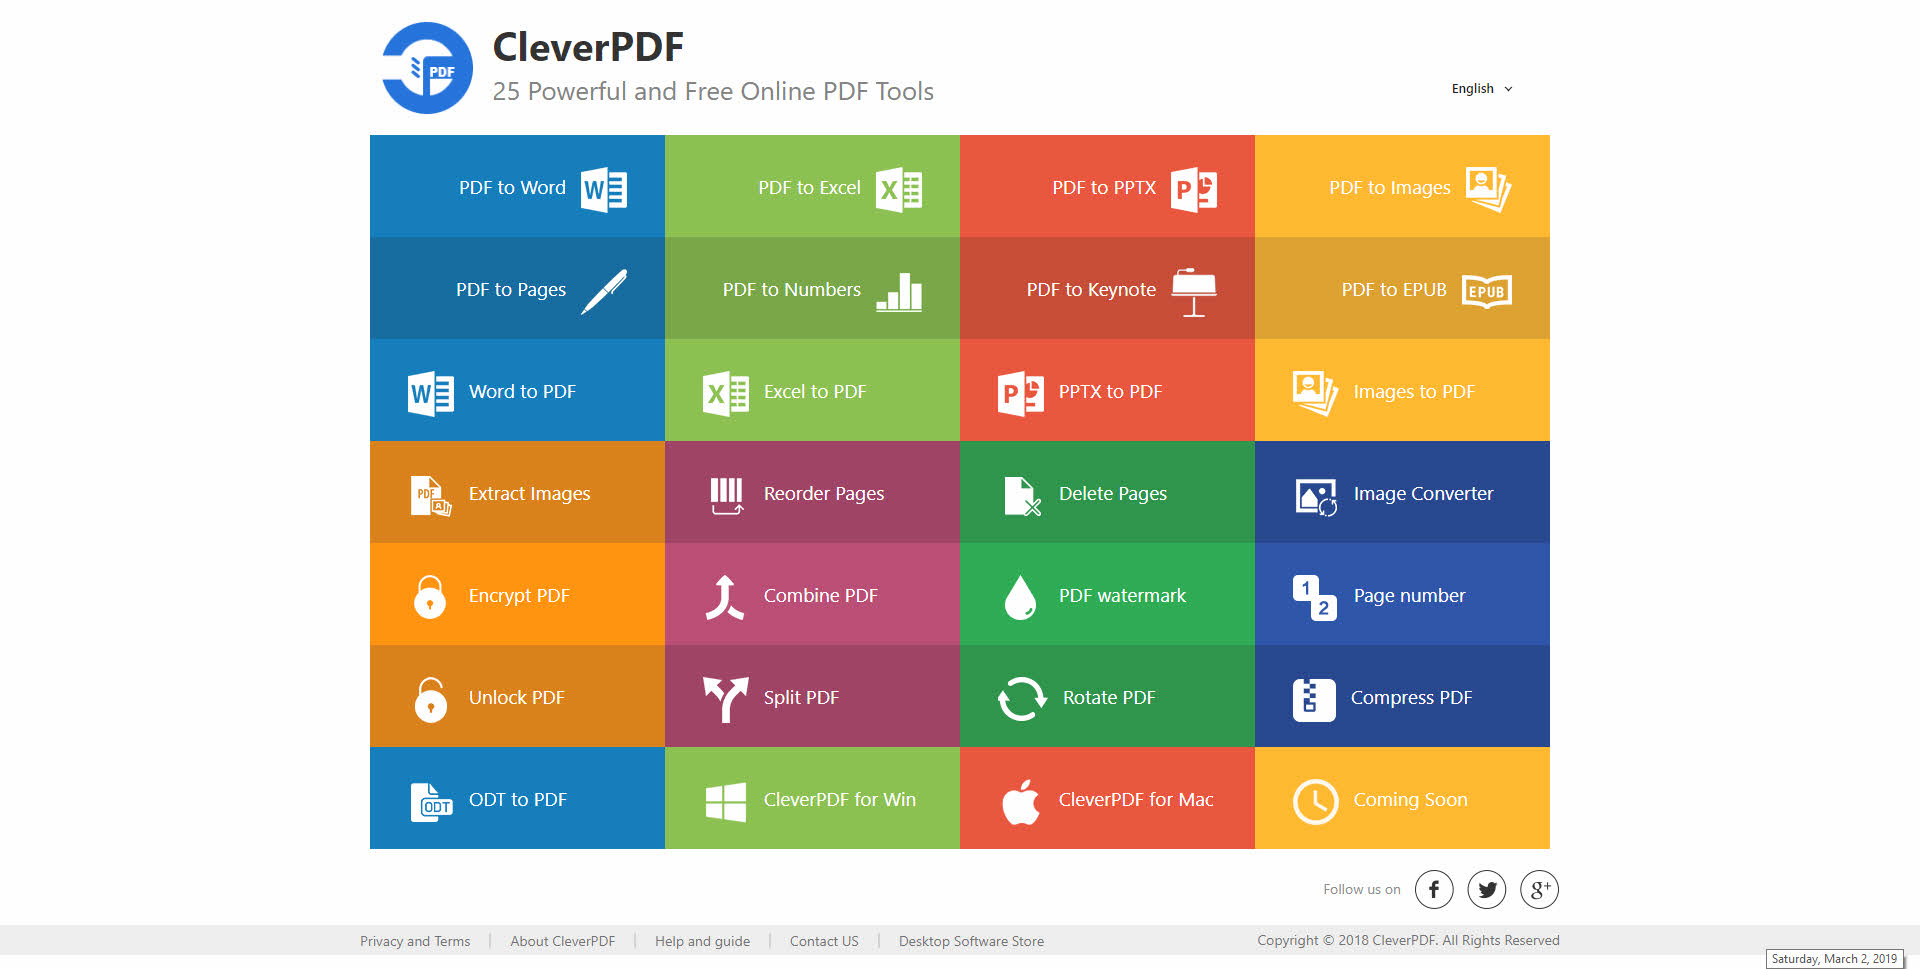 Clever PDF